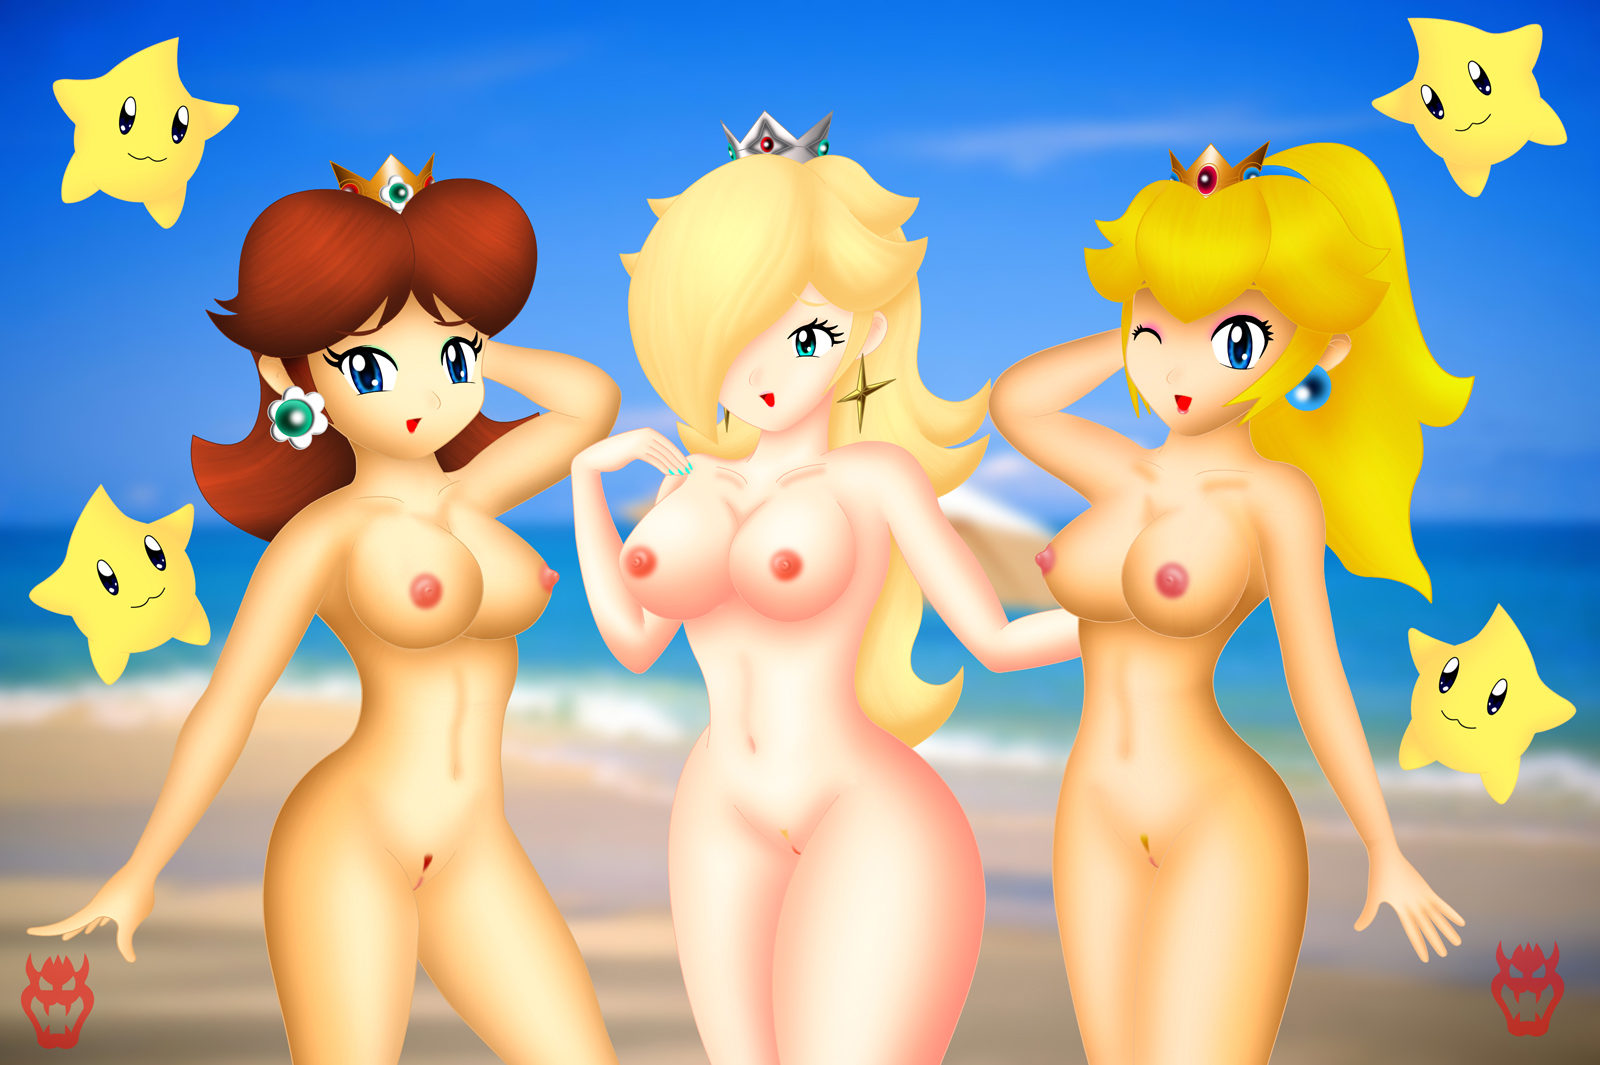 Girls from supermario naked